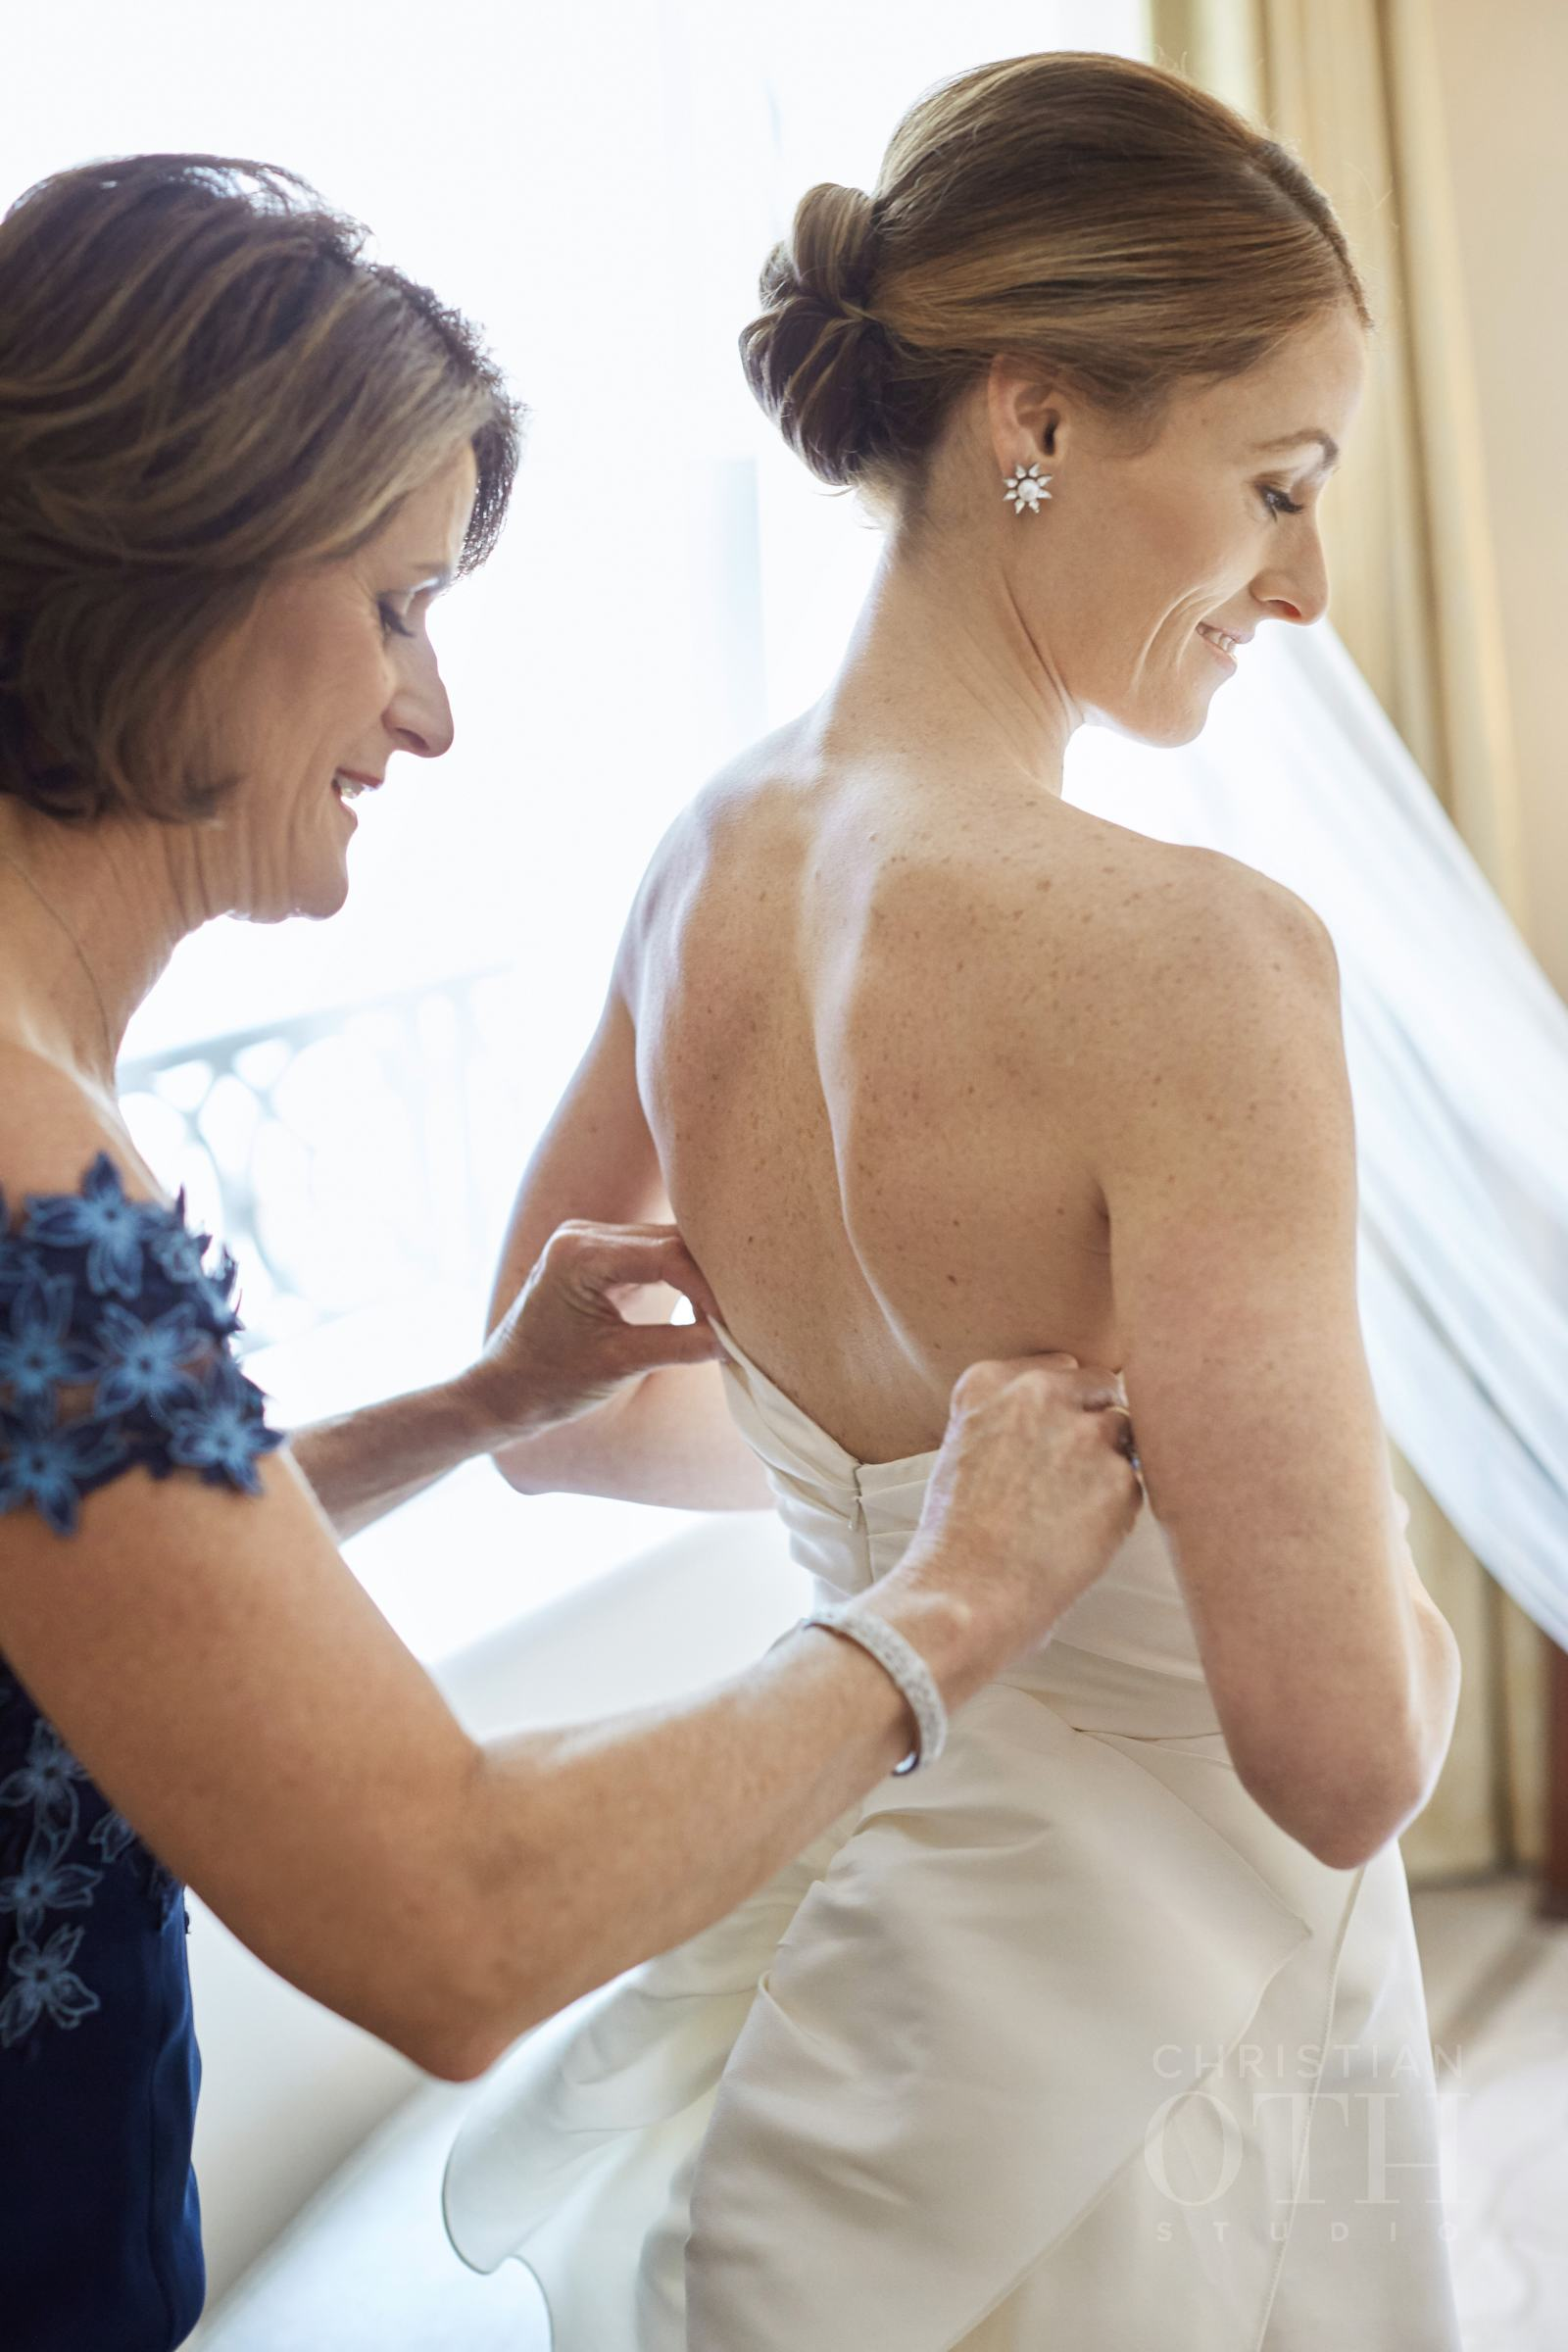 Mother of the bride adjusts dress on bride with modern, chic chignon, before wedding at Peninsula Hotel in New York City